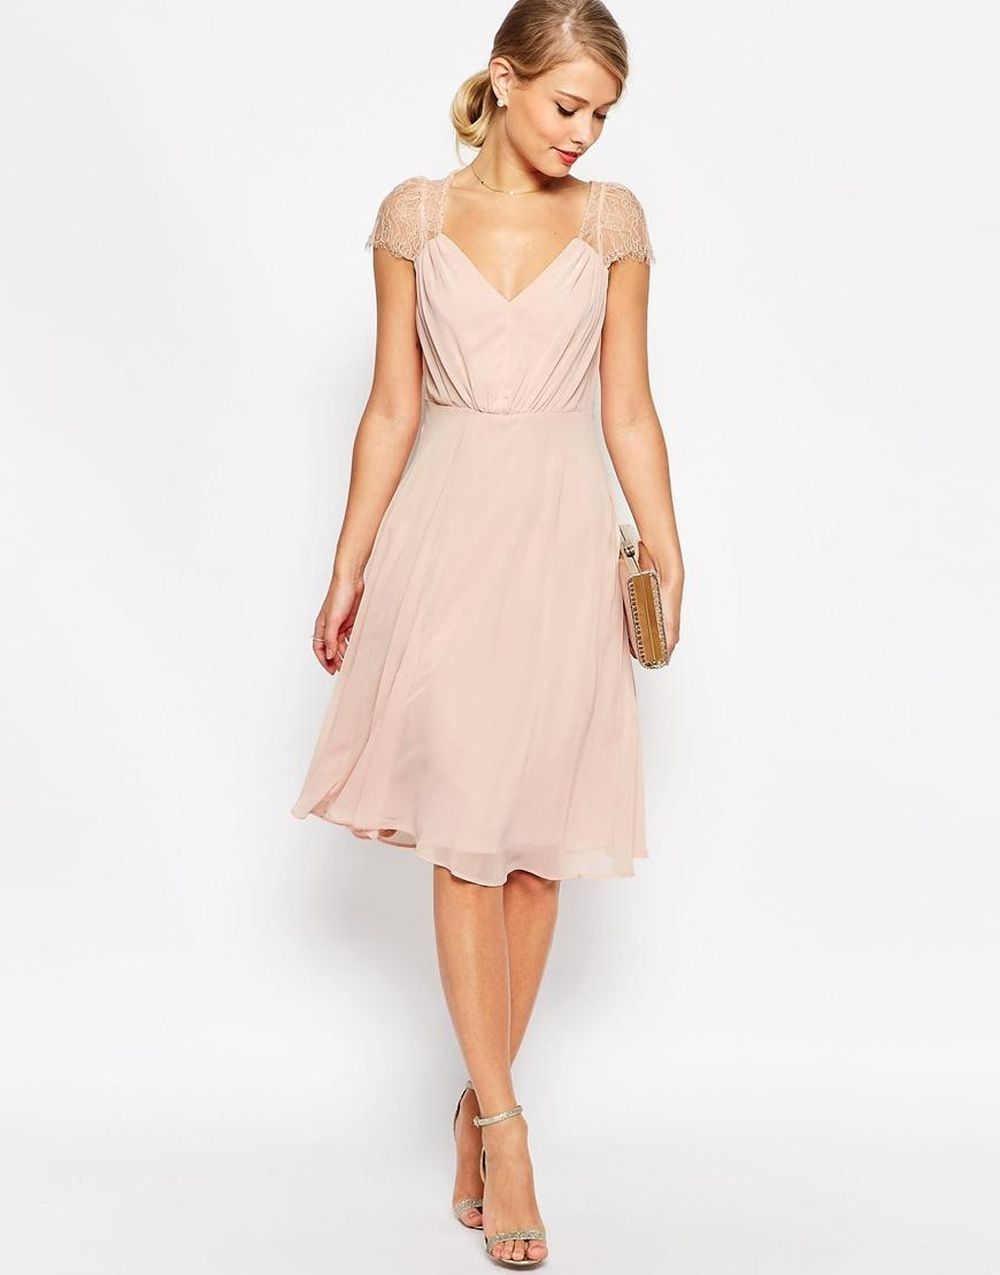 Perfect Outfits For Summer Wedding Guests  Summer wedding guests